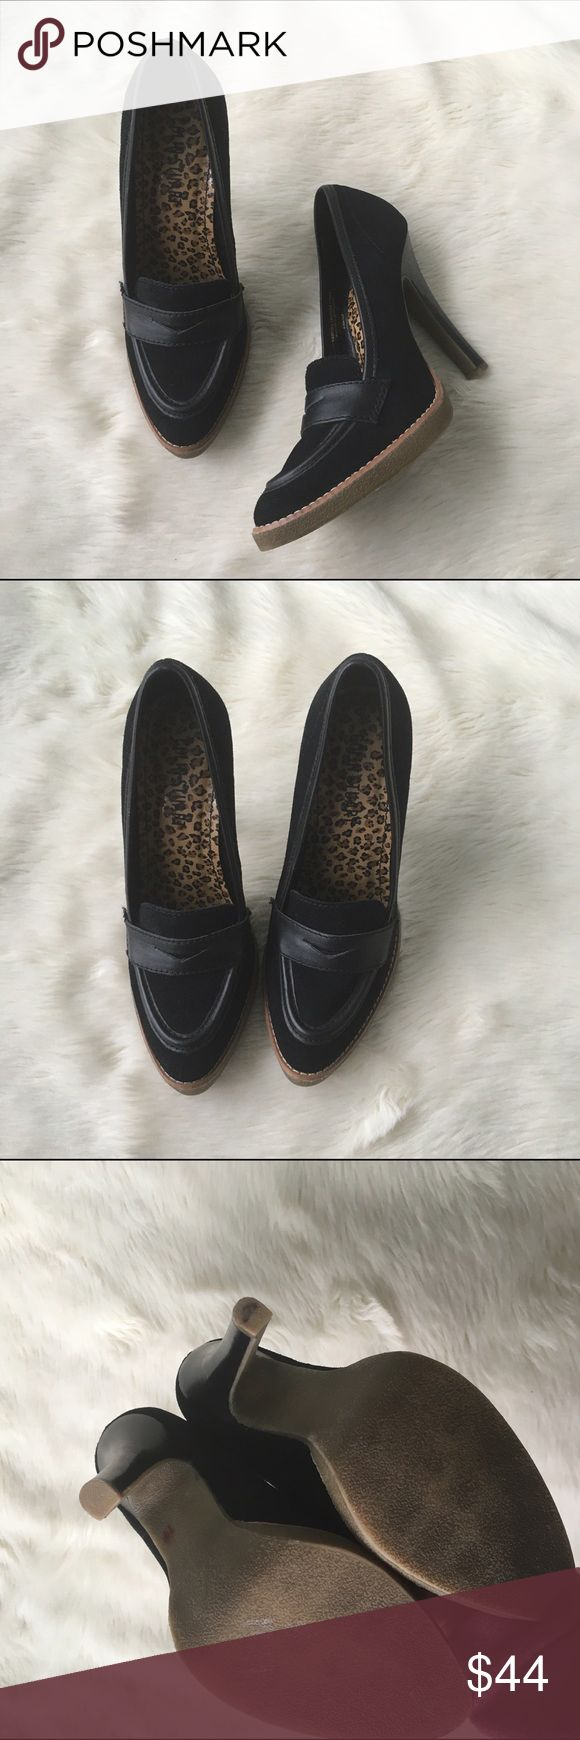 "Colin Stuart suede loafer heels Sz 8 Colin Stuart loafer heels. Excellent condition. Fit about a half size small in my opinion. Heel approx 4.5"" Colin Stuart Shoes"